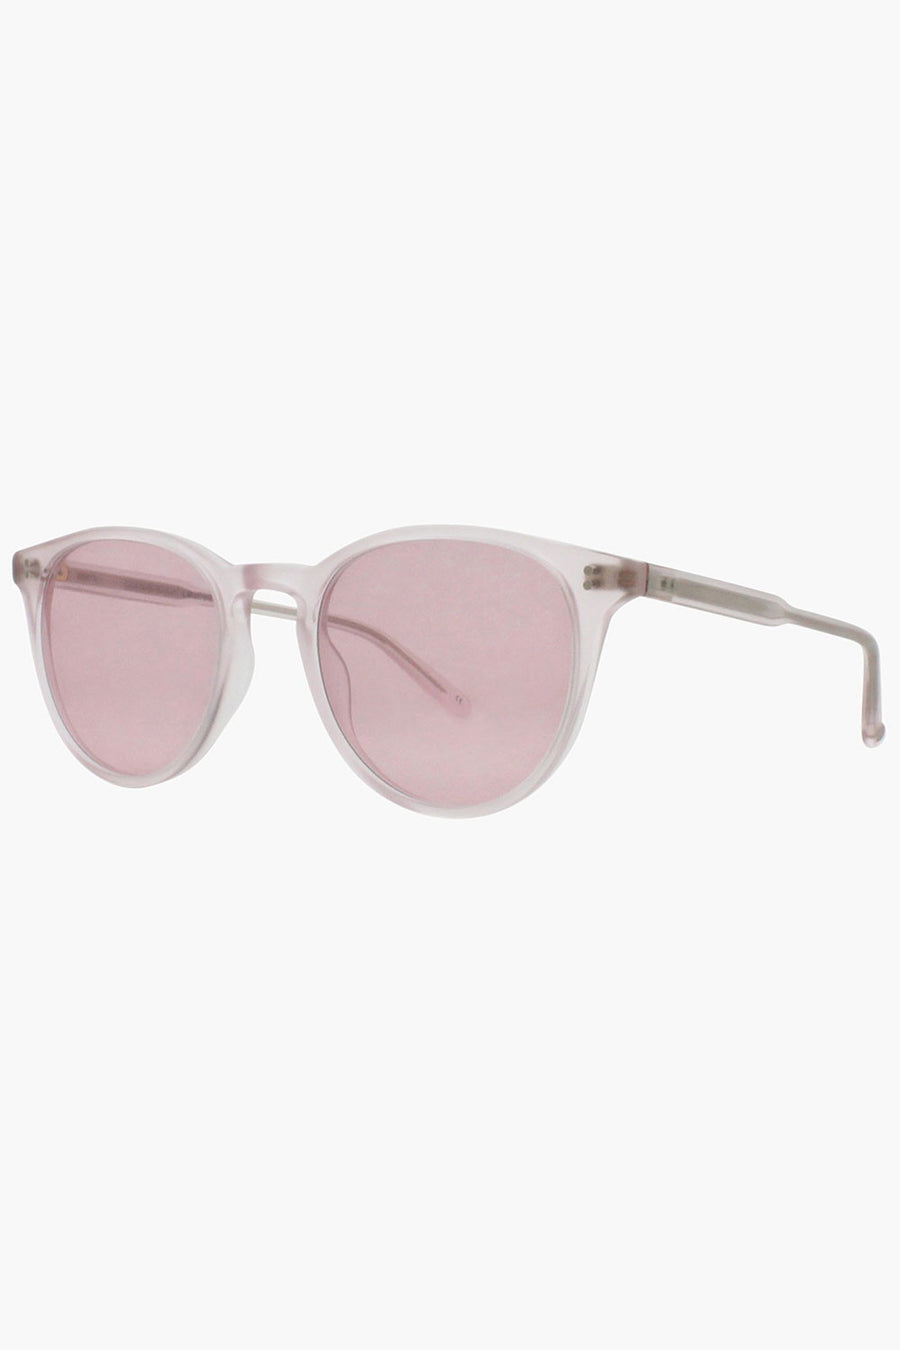 Milwood 46 Matte Lavender/Photochrome Berry | Eyewear NZ | GARRET LEIGHT NZ | Black Box Boutique Auckland | Womens Fashion NZ